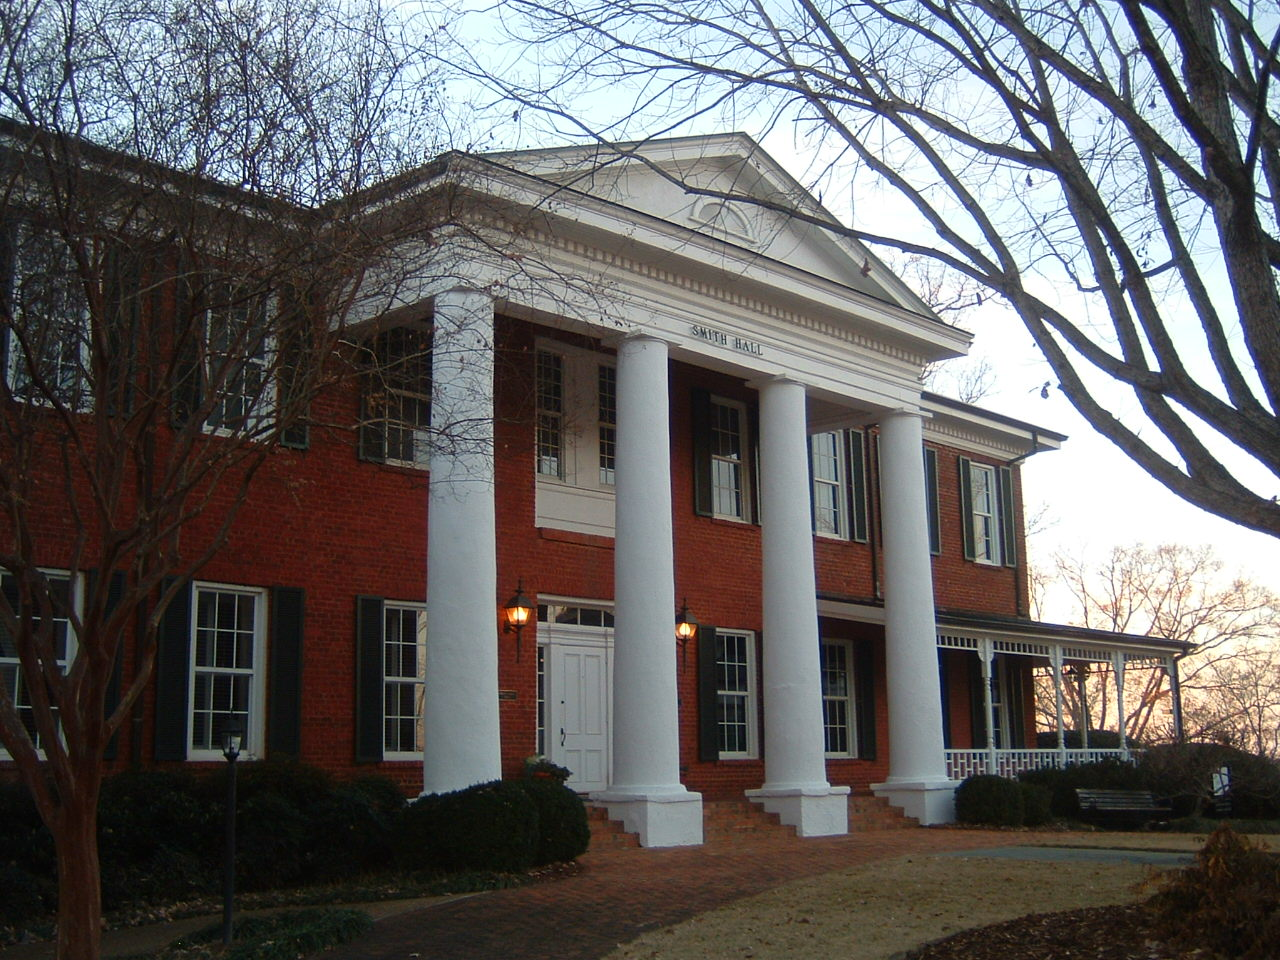 Smith Hall LaGrange College ghost haunted